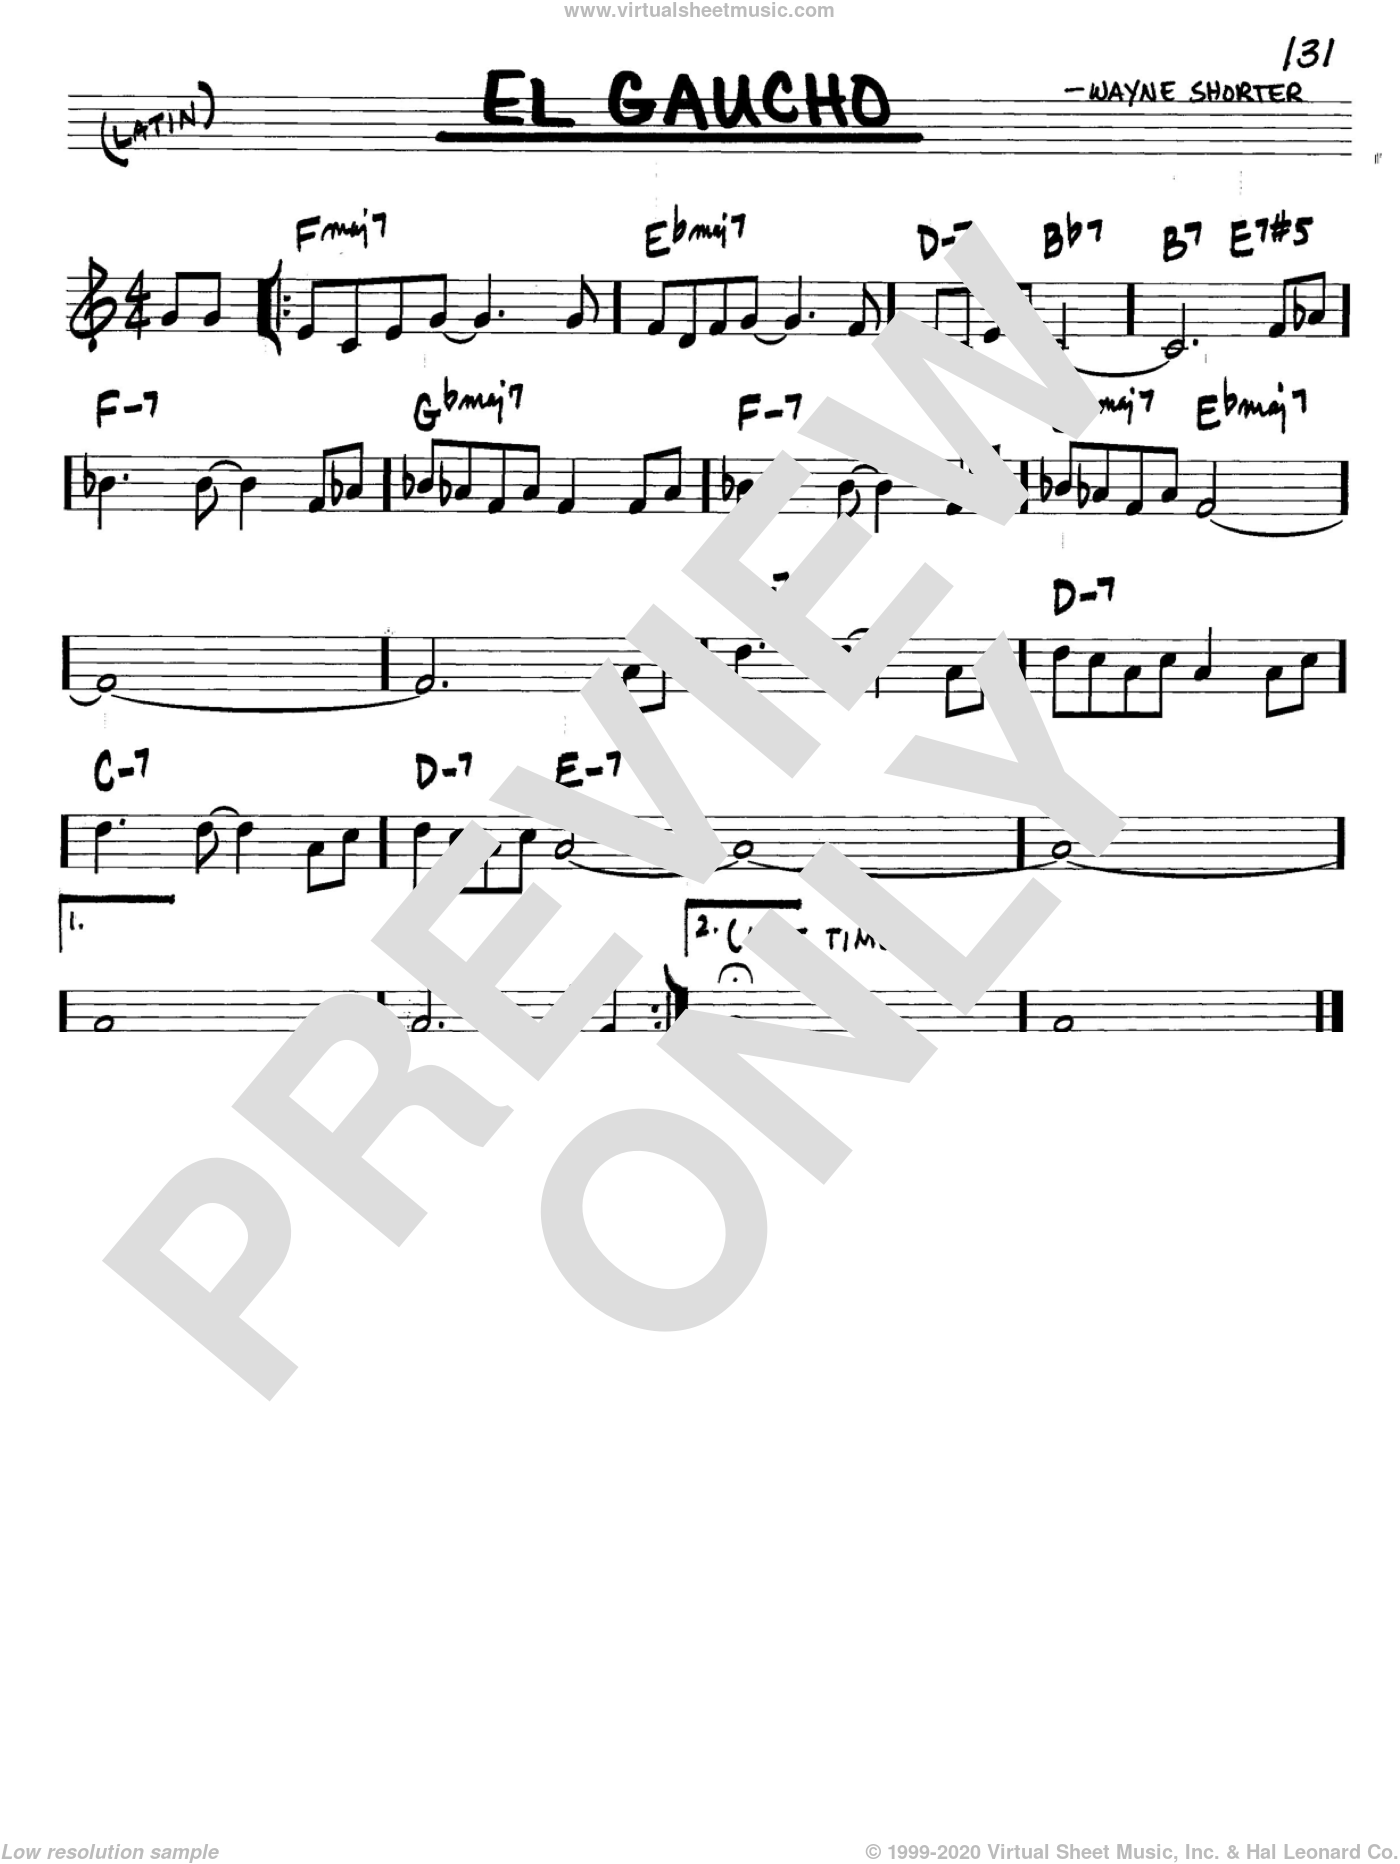 El Gaucho sheet music for voice and other instruments (C) by Wayne Shorter. Score Image Preview.